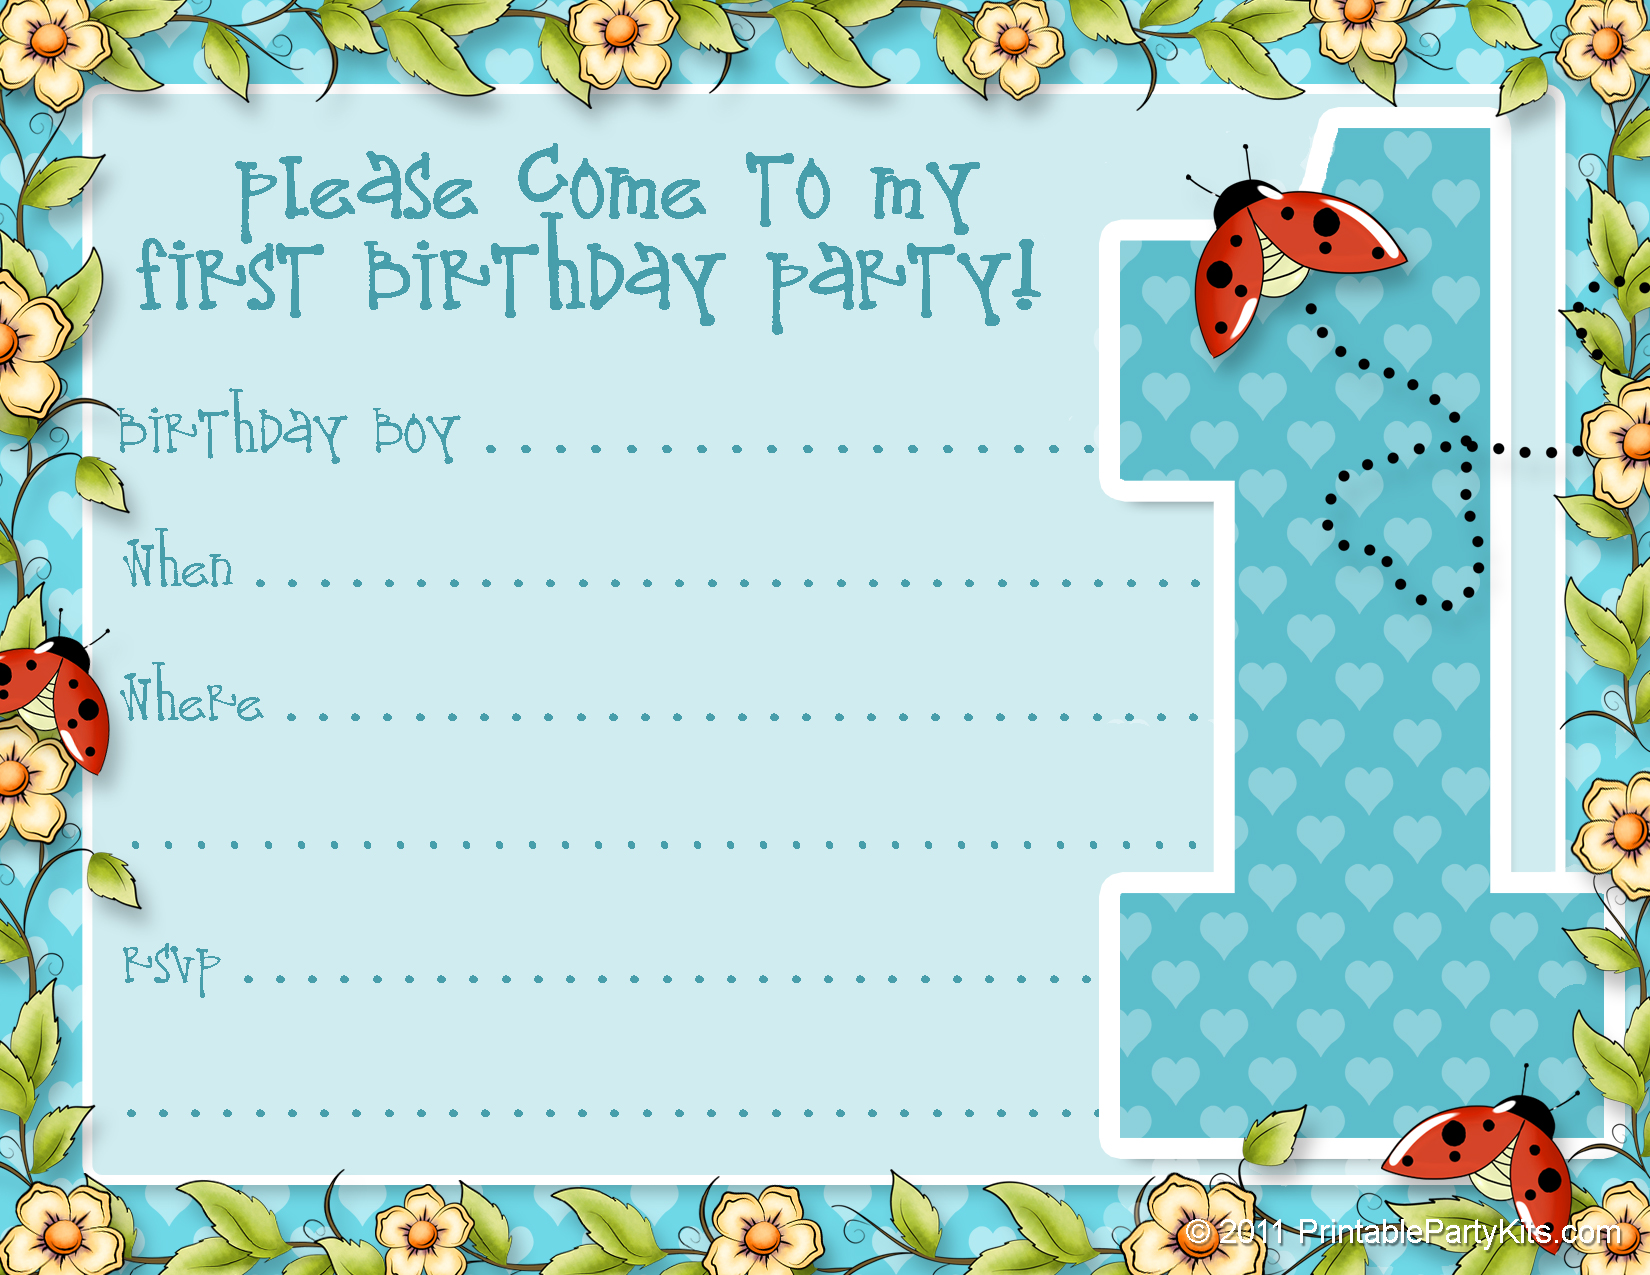 50 Free Birthday Invitation Templates – You Will Love These – Demplates